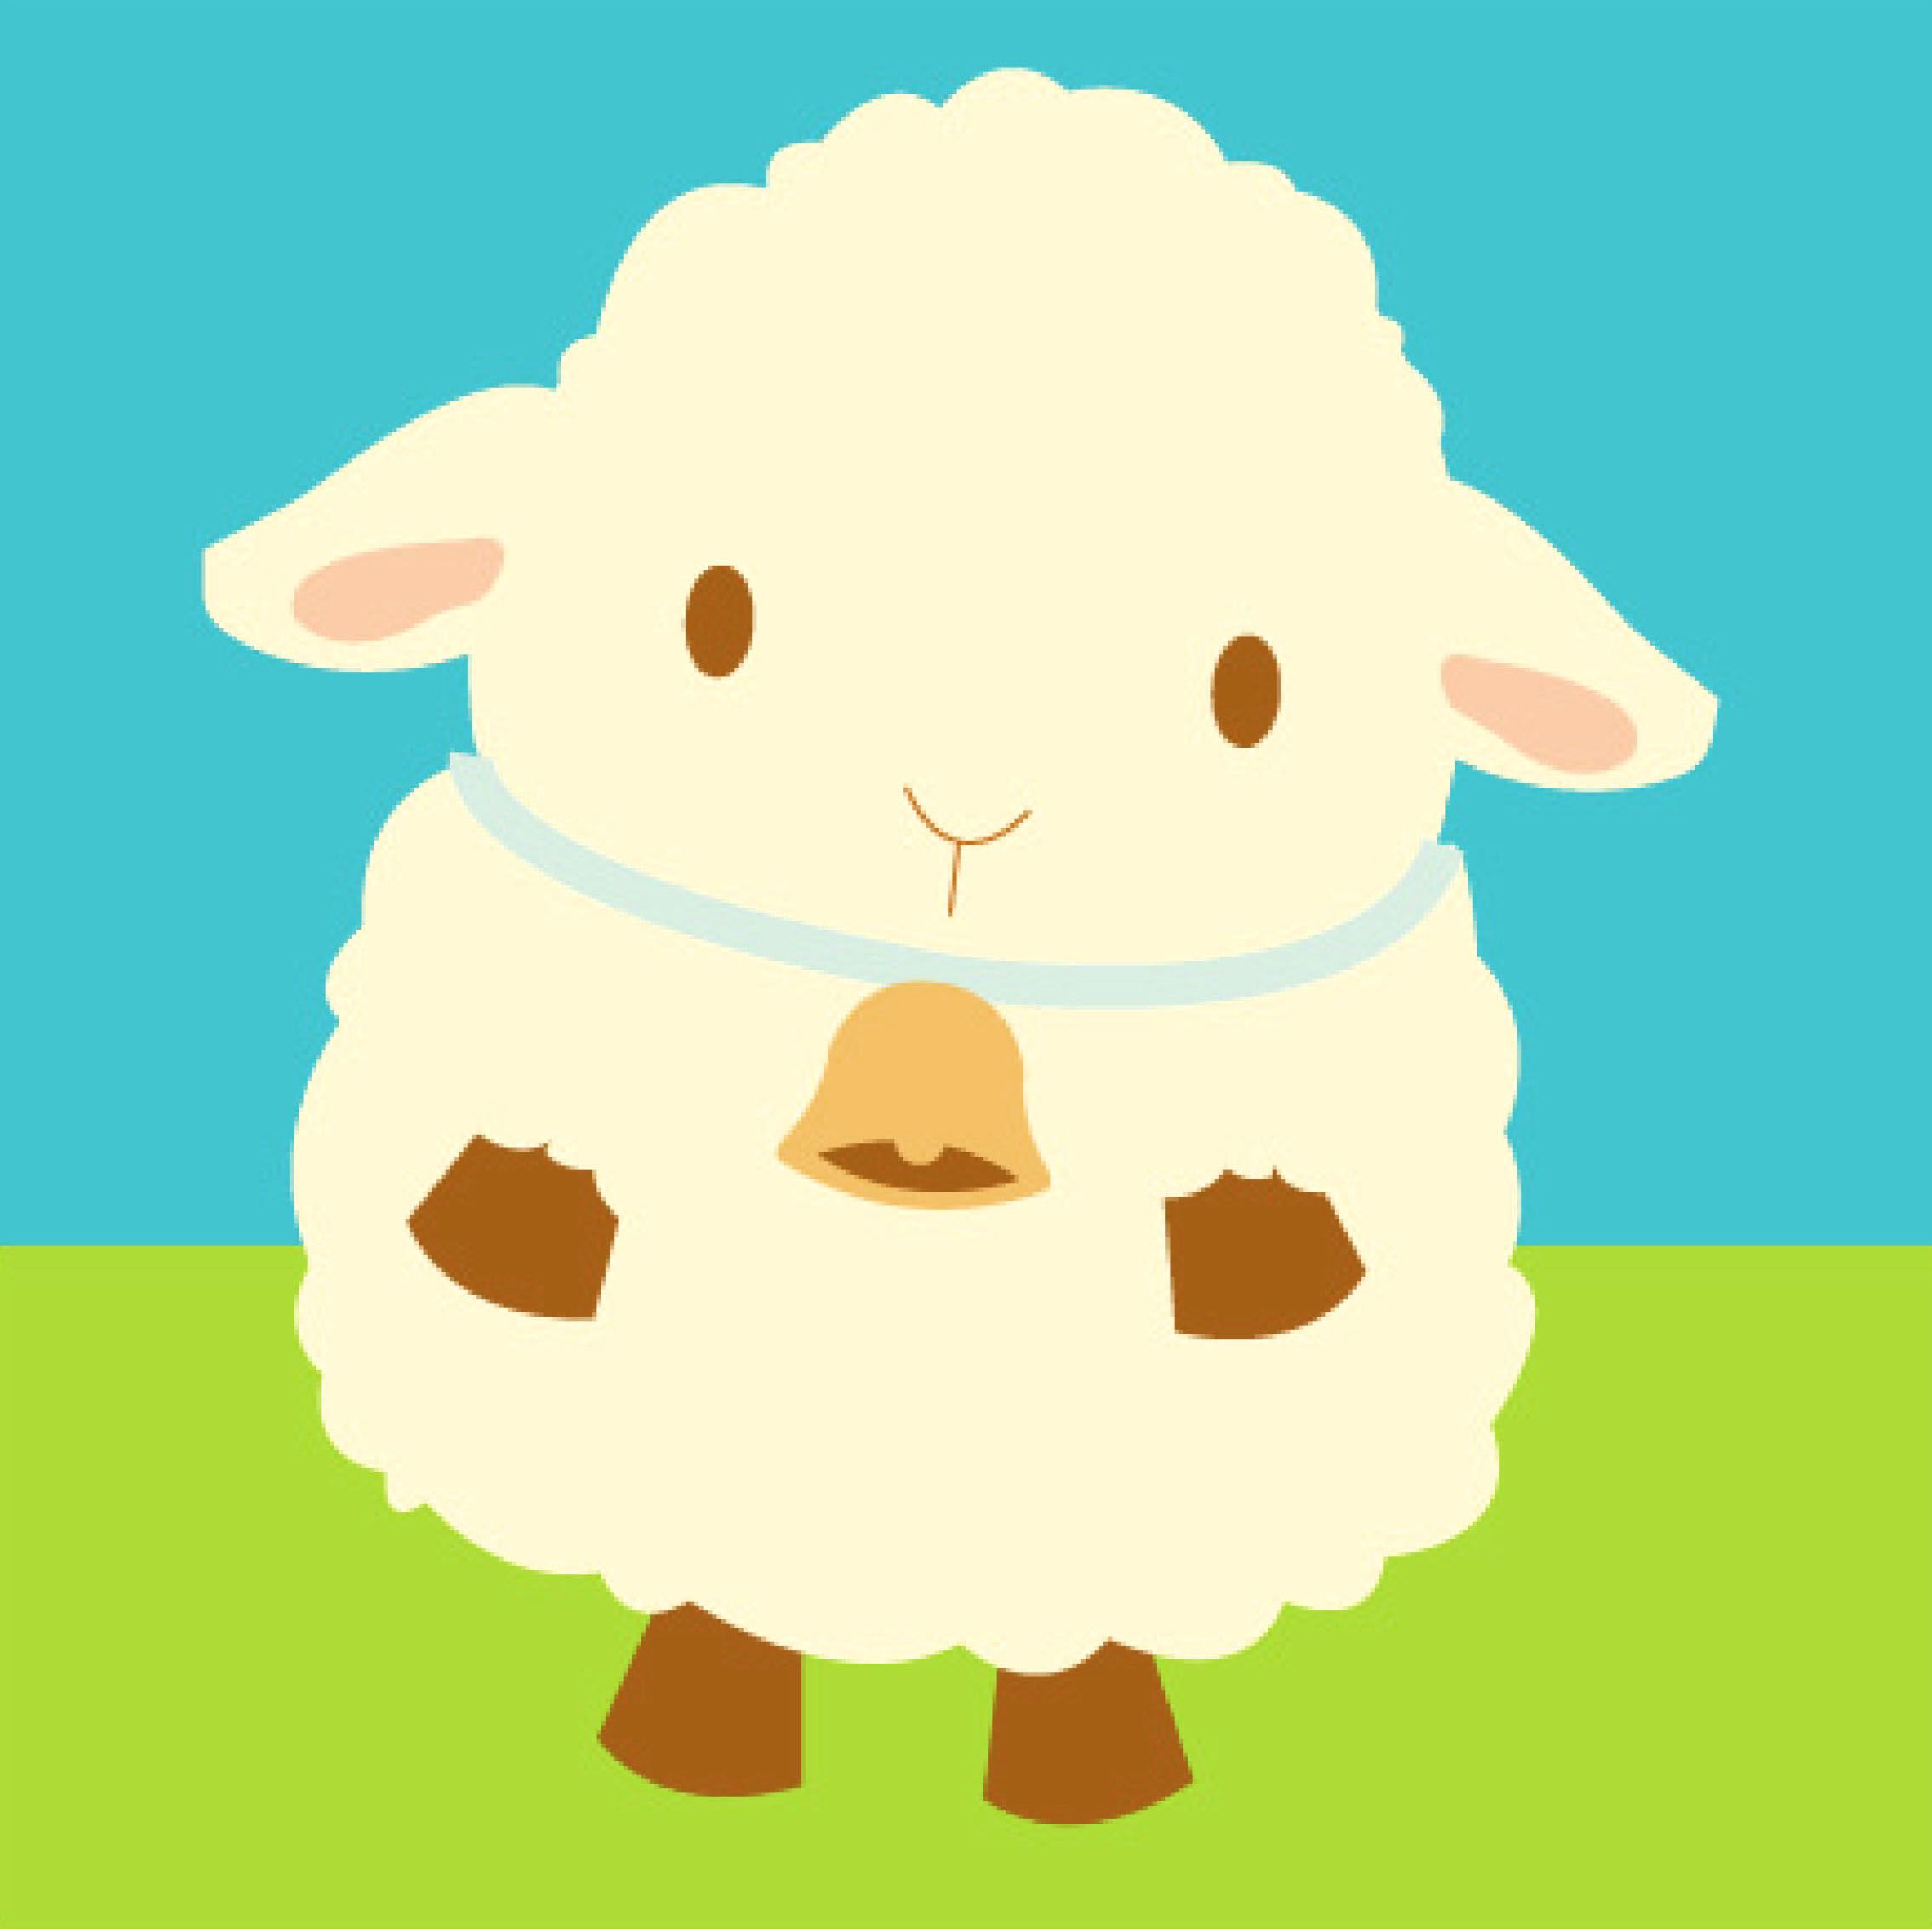 Cute sheep clipart in 2019.